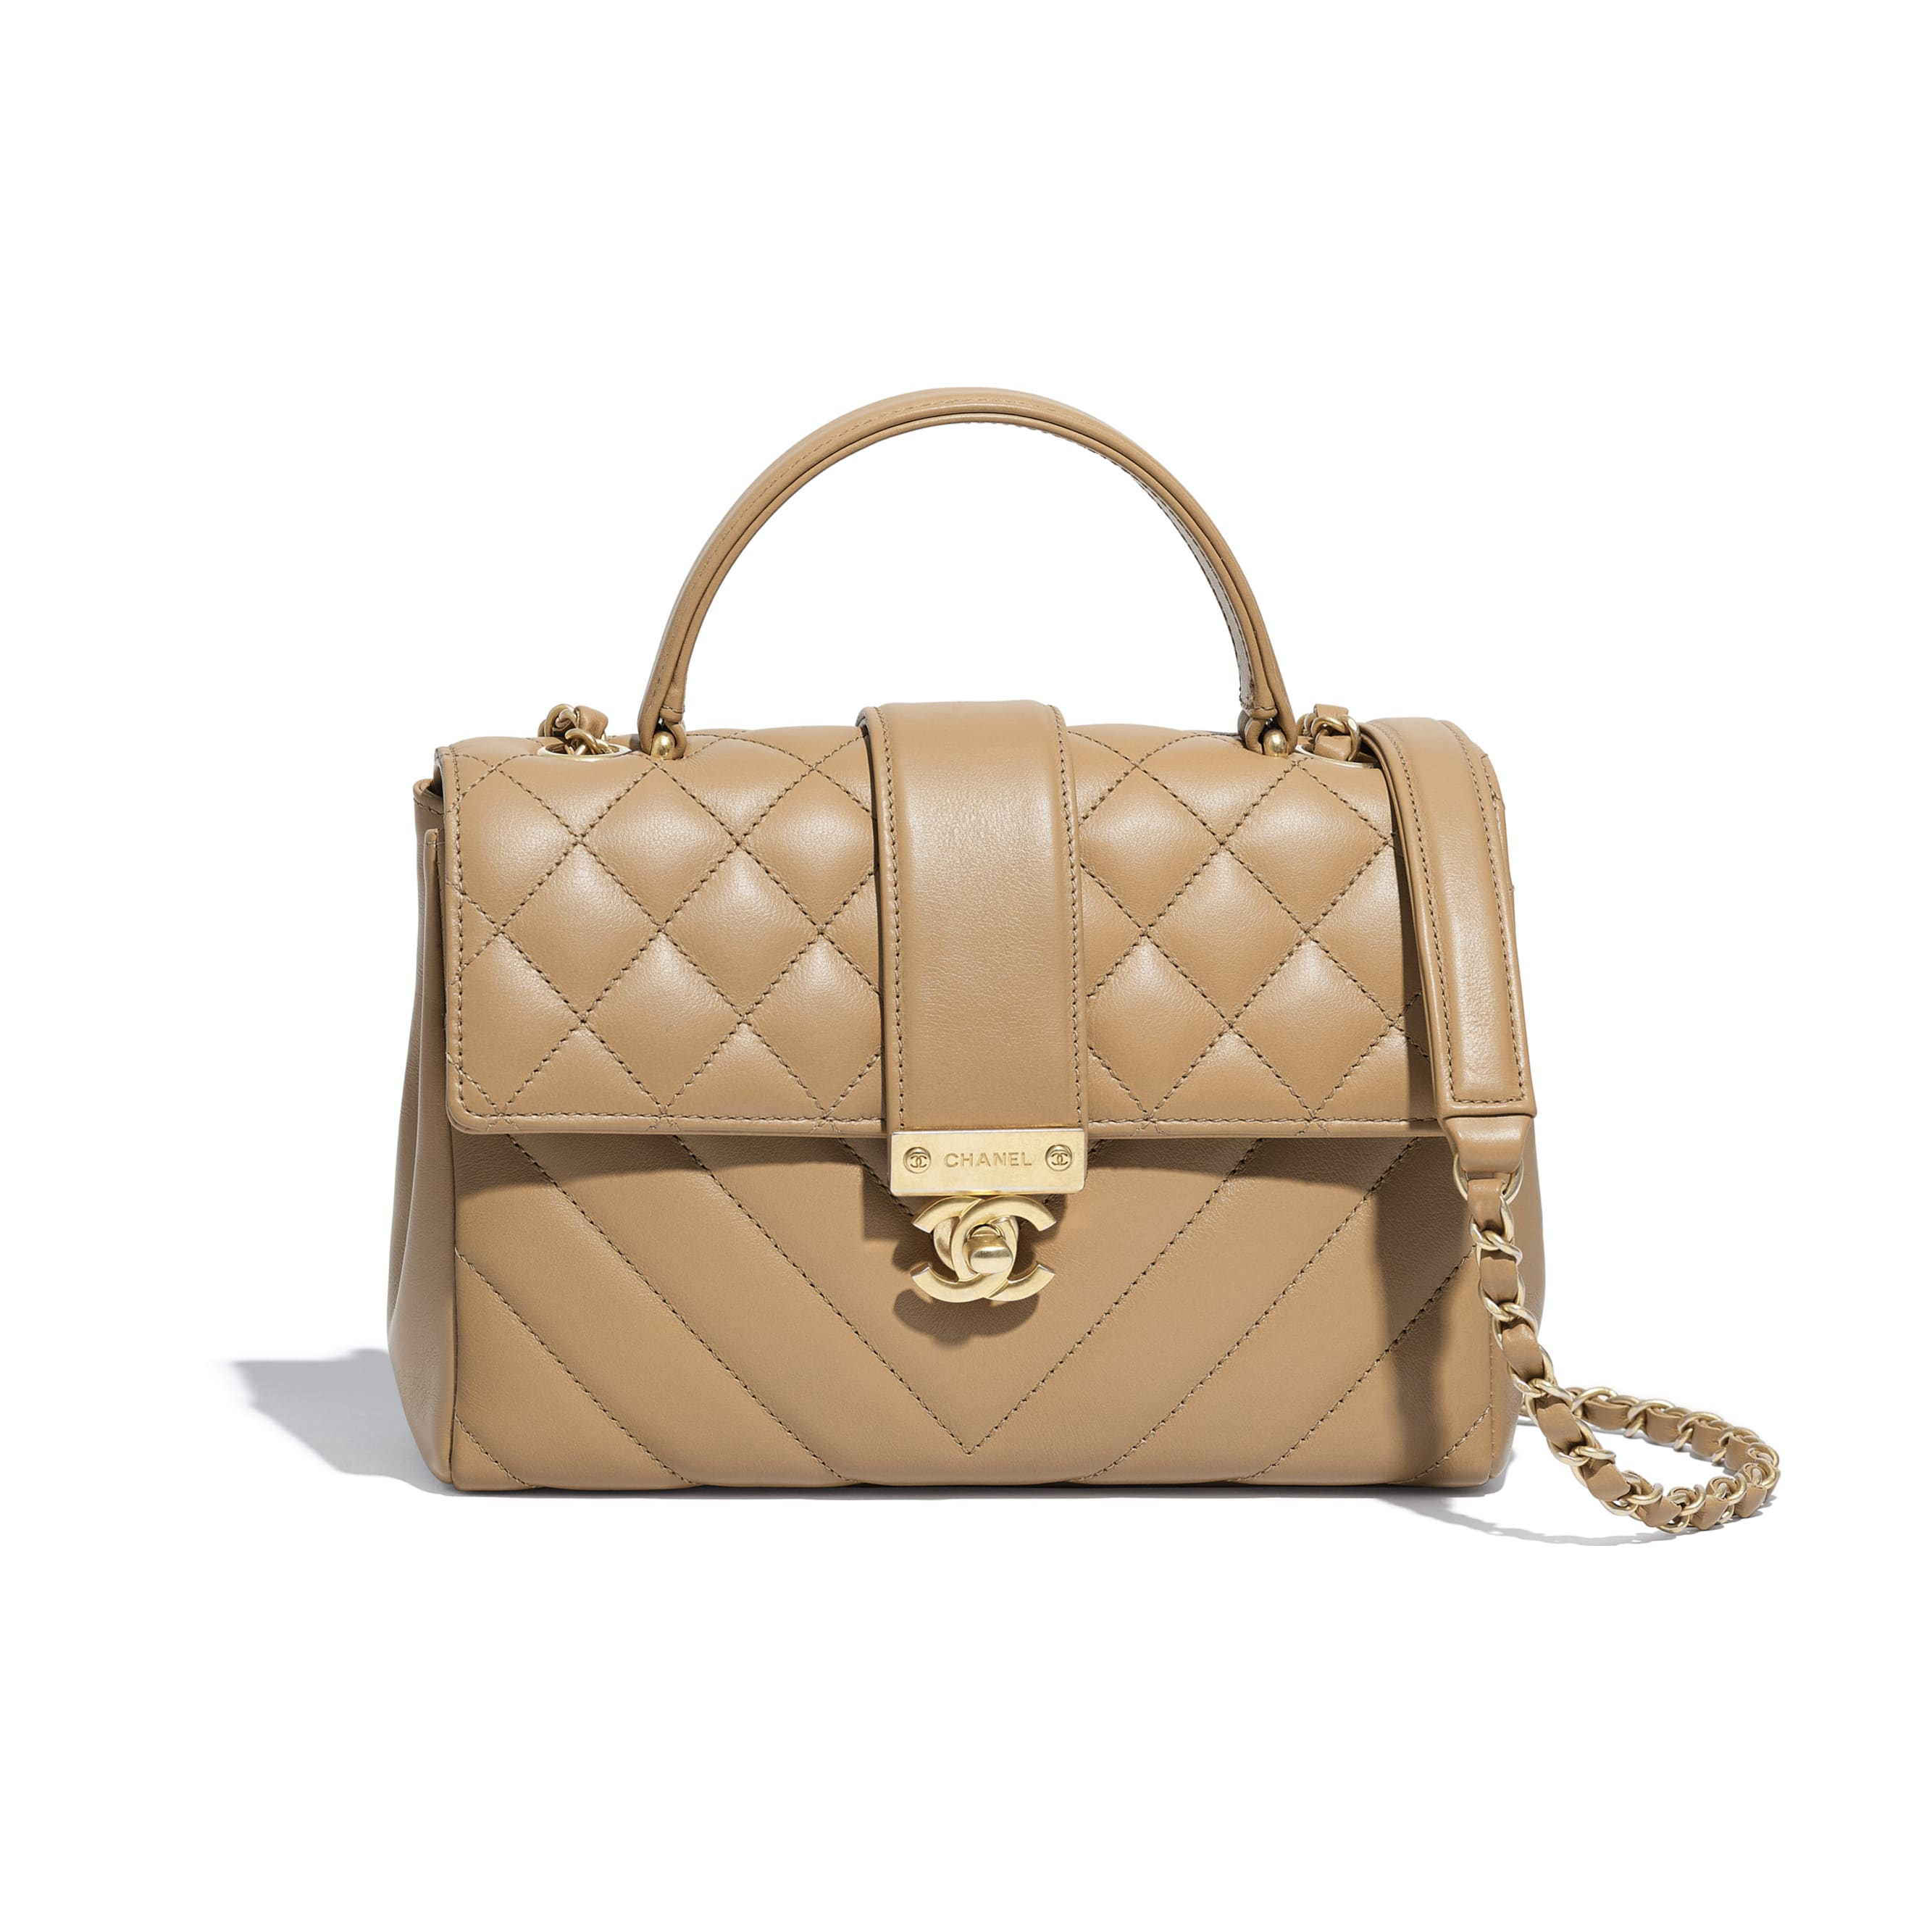 Flap Bag with Top Handle - Beige - Calfskin & Gold-Tone Metal - Default view - see standard sized version